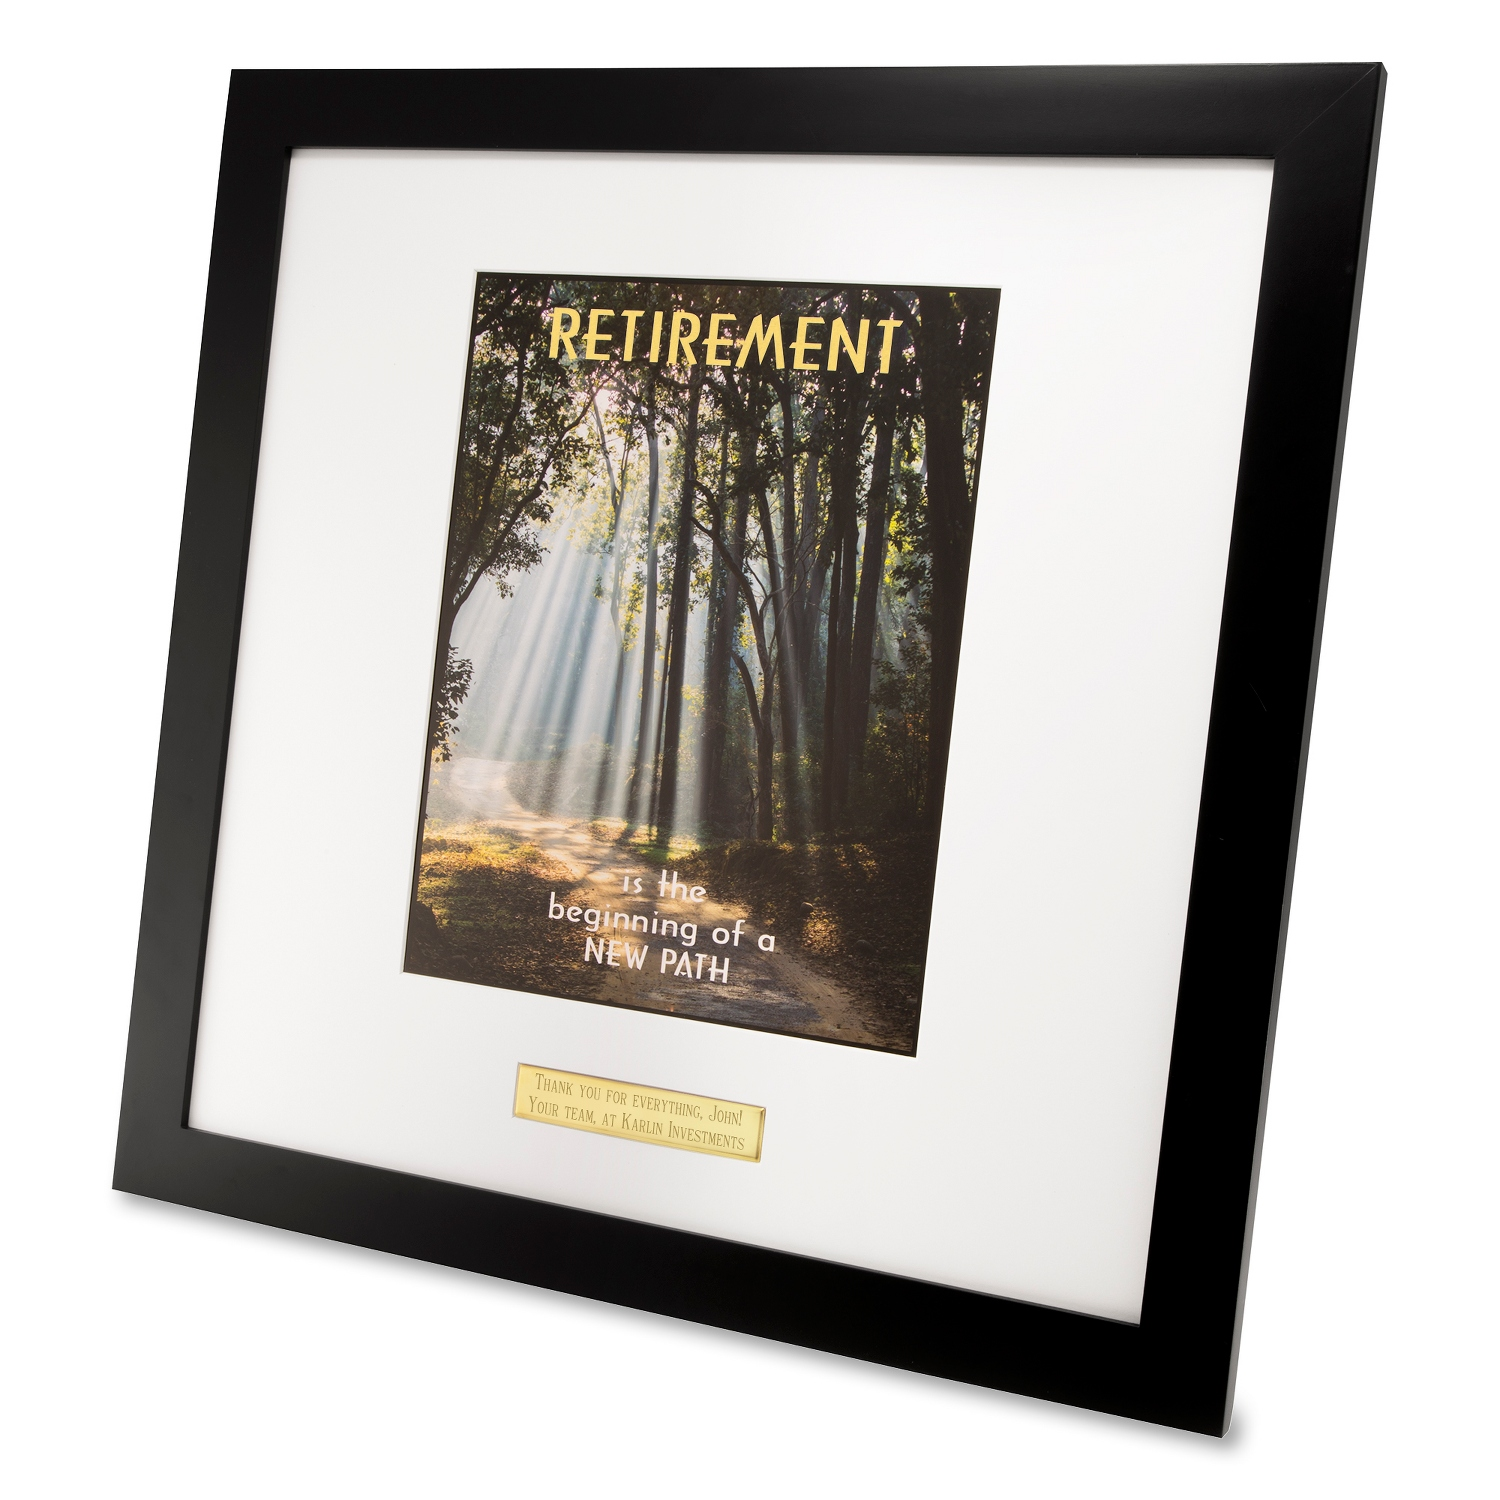 Large Retirement Motivational Framed Wall Art